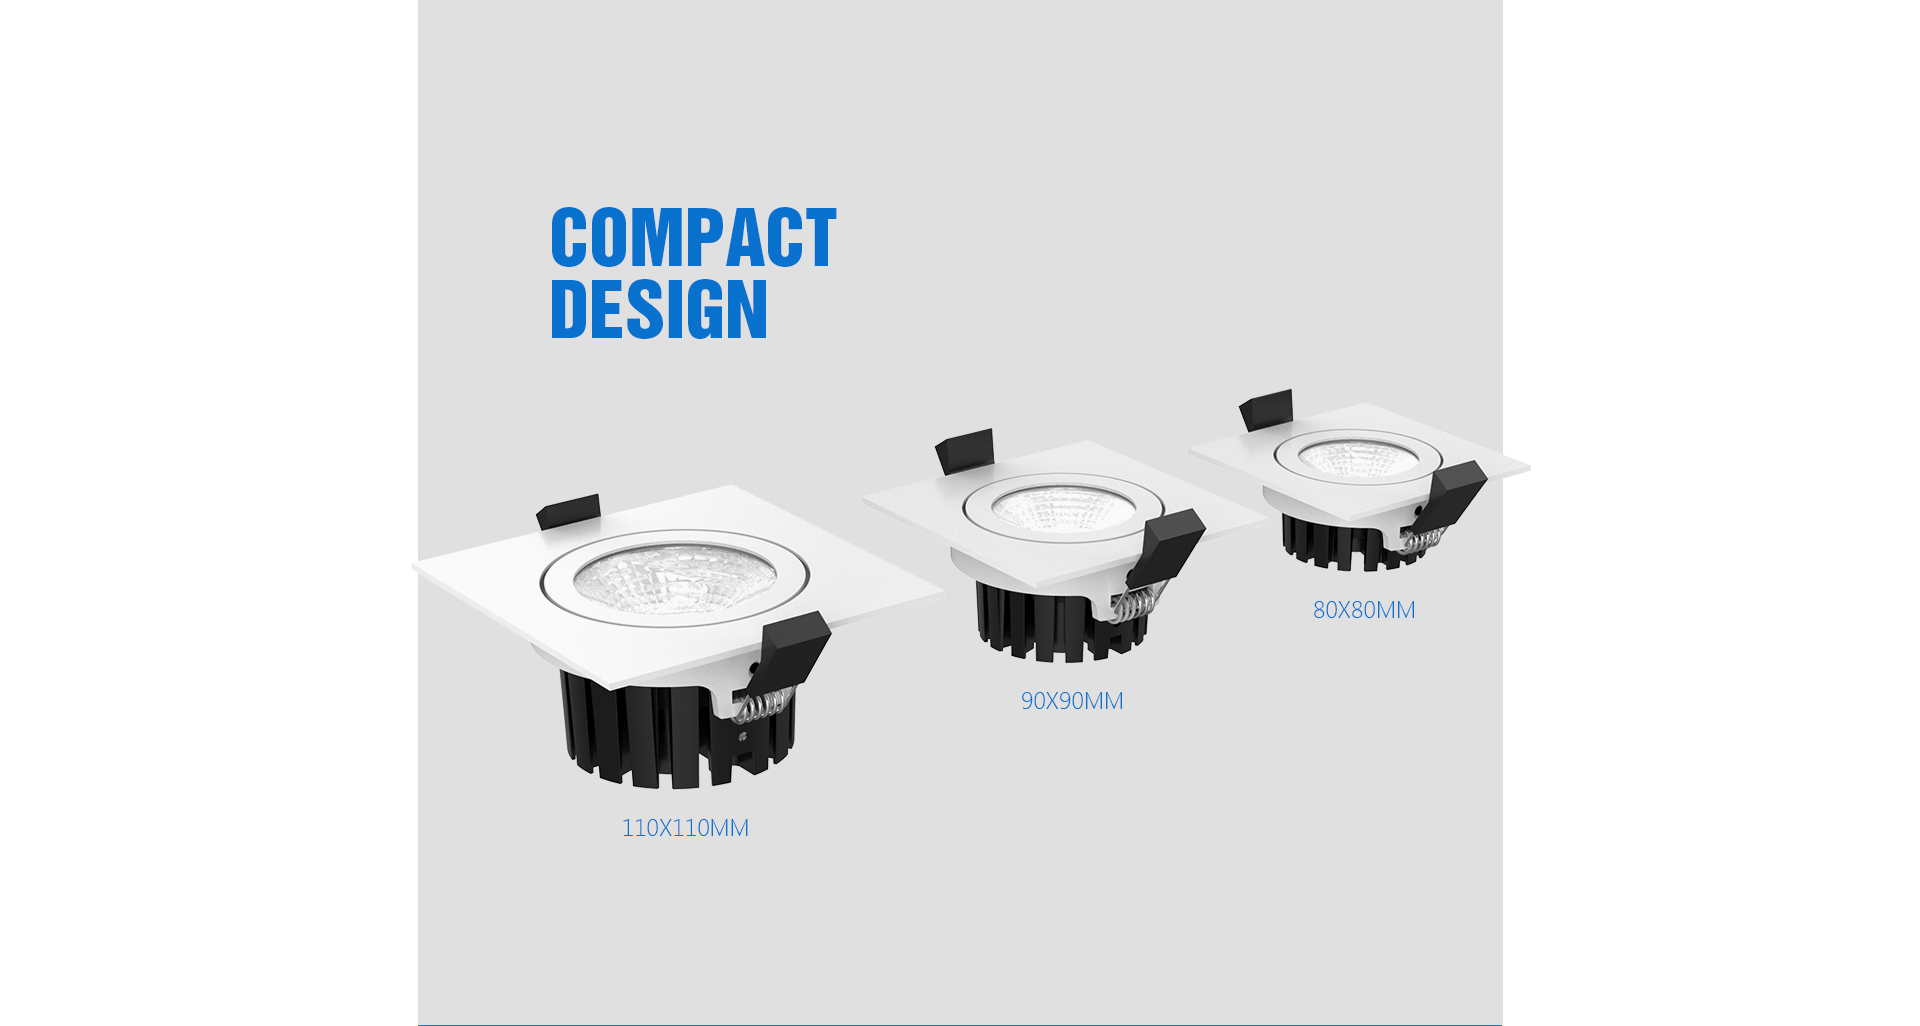 Commercial LED Downlight Fixtures_02